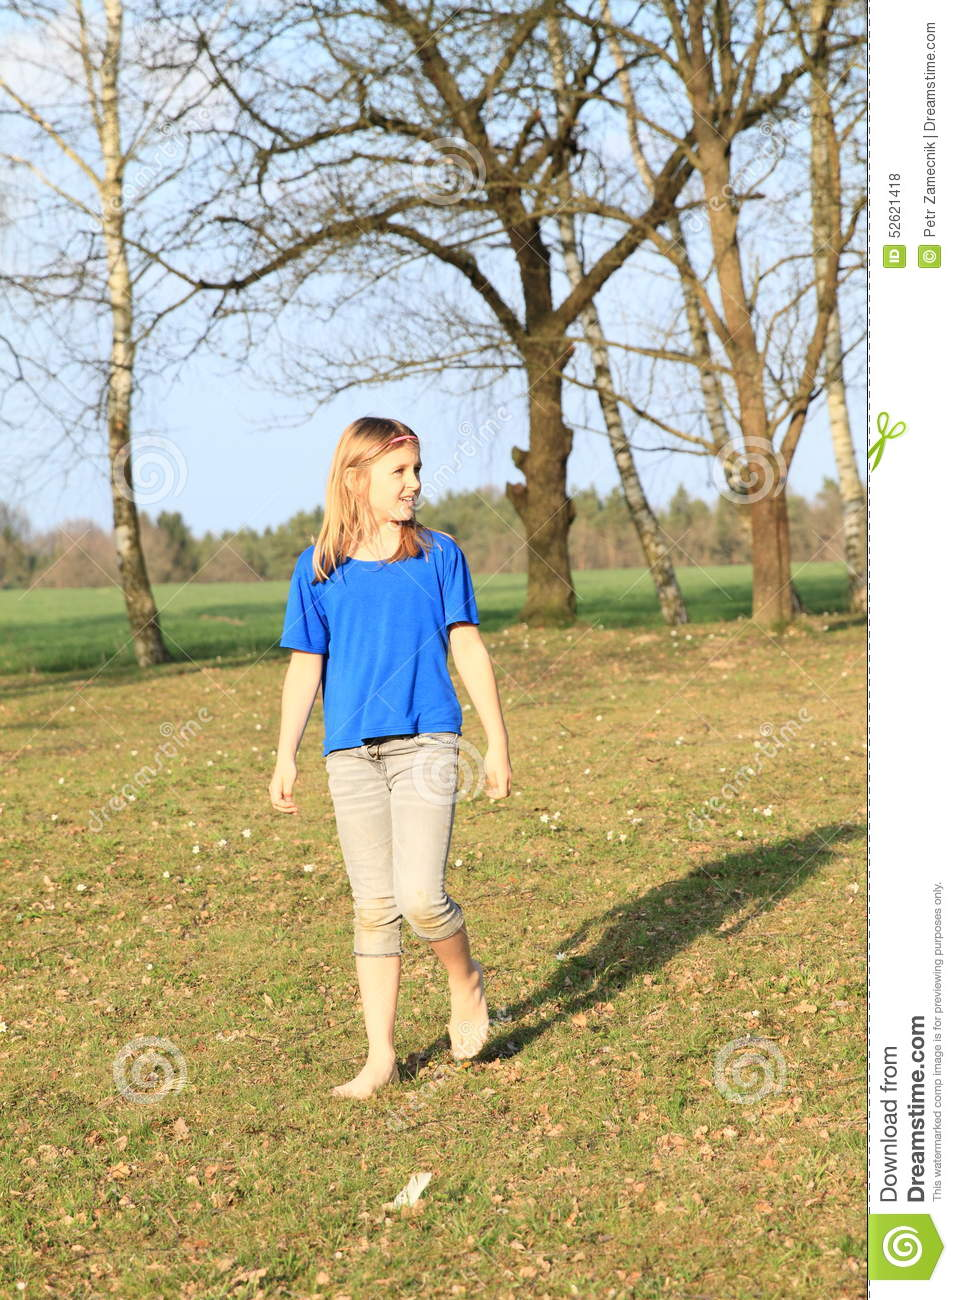 https://thumbs.dreamstime.com/z/little-girl-walking-barefoot-blue-shorts-t-shirt-meadow-52621418.jpg